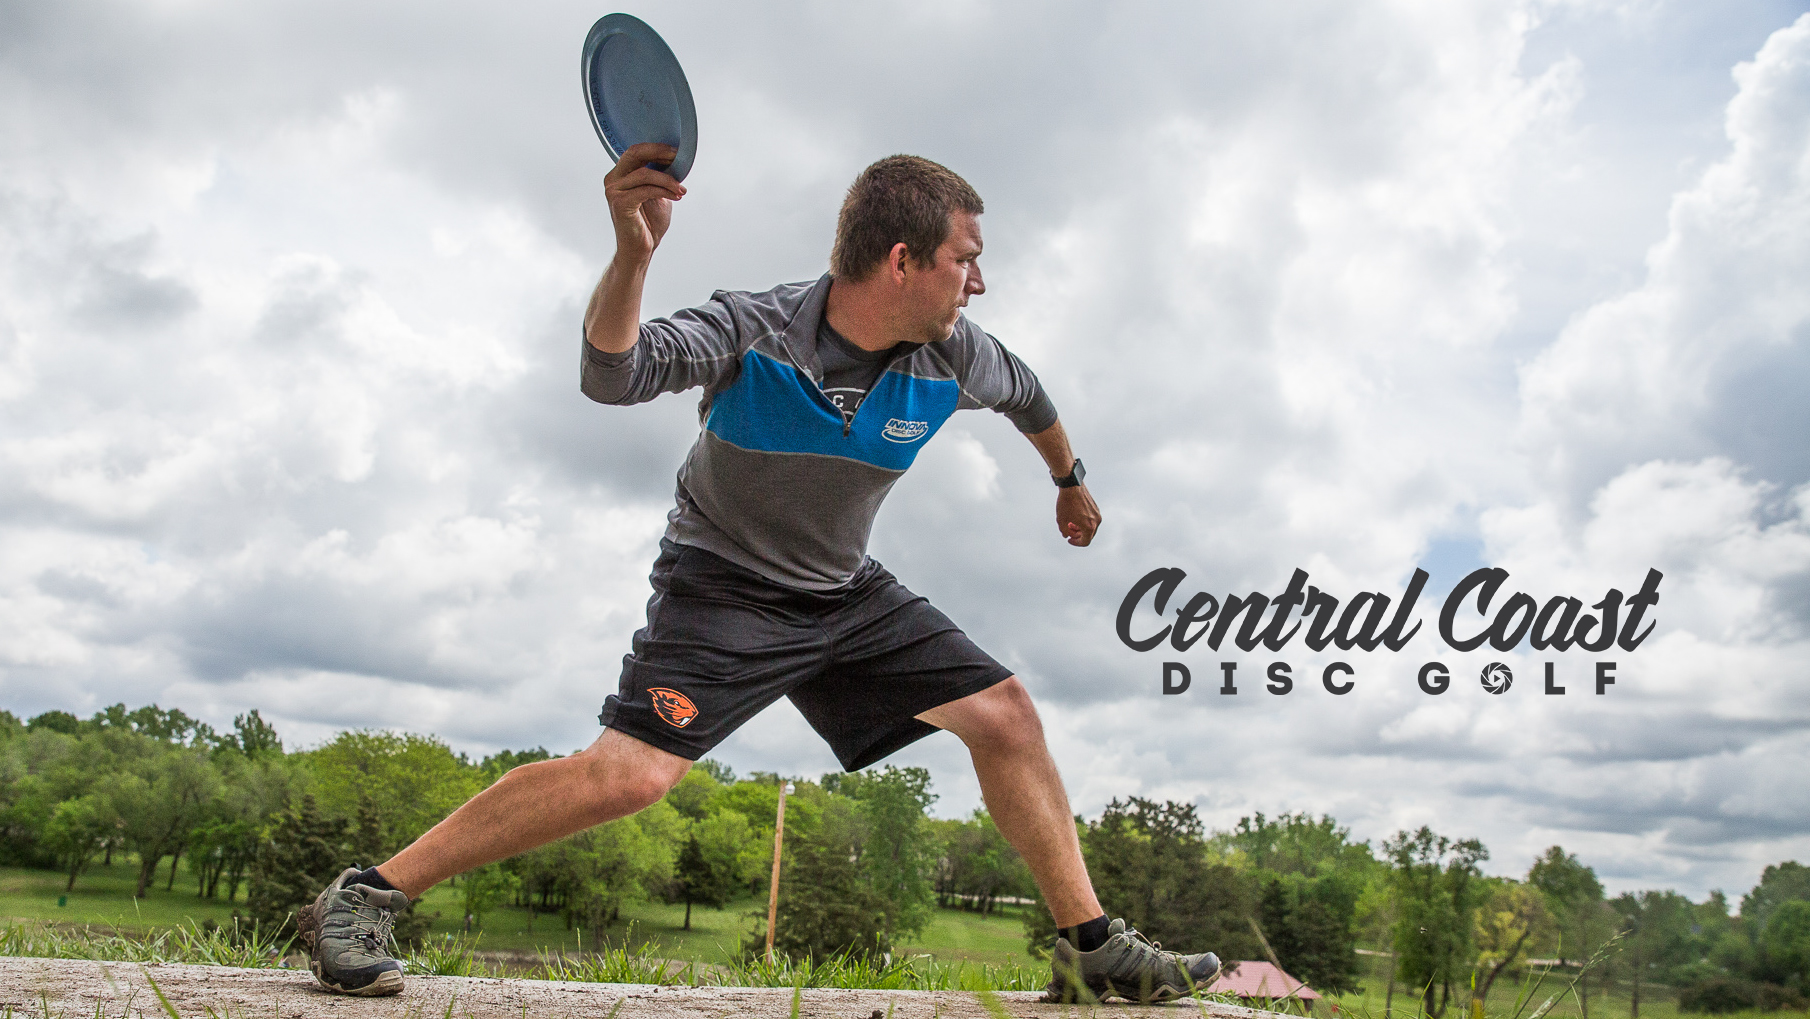 Central Coast Disc Golf at Glass Blown Open